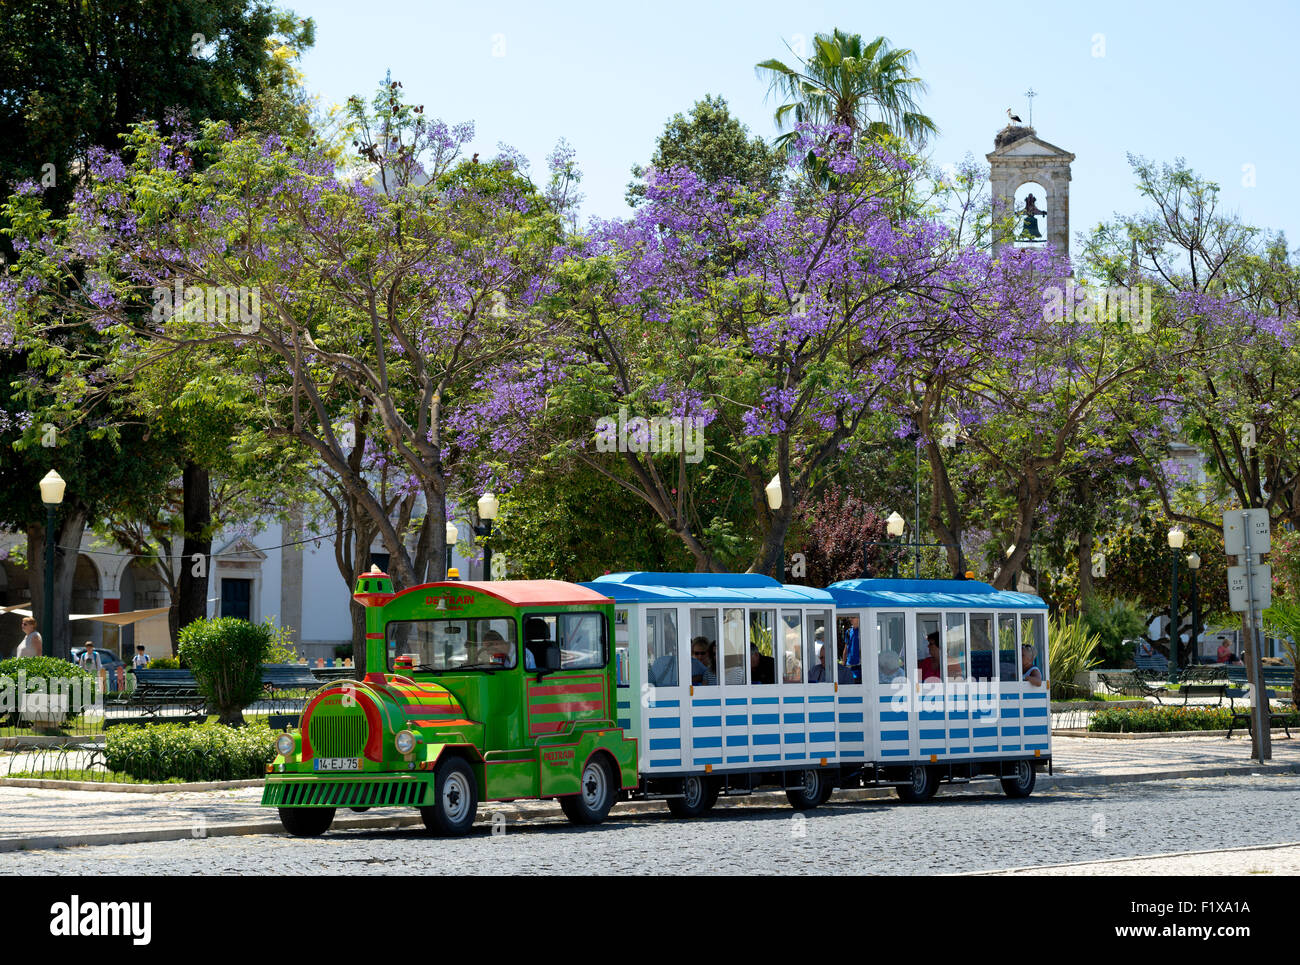 Tourist 'train' in the central square, Faro, Algarve, with Jacaranda trees in flower - Stock Image